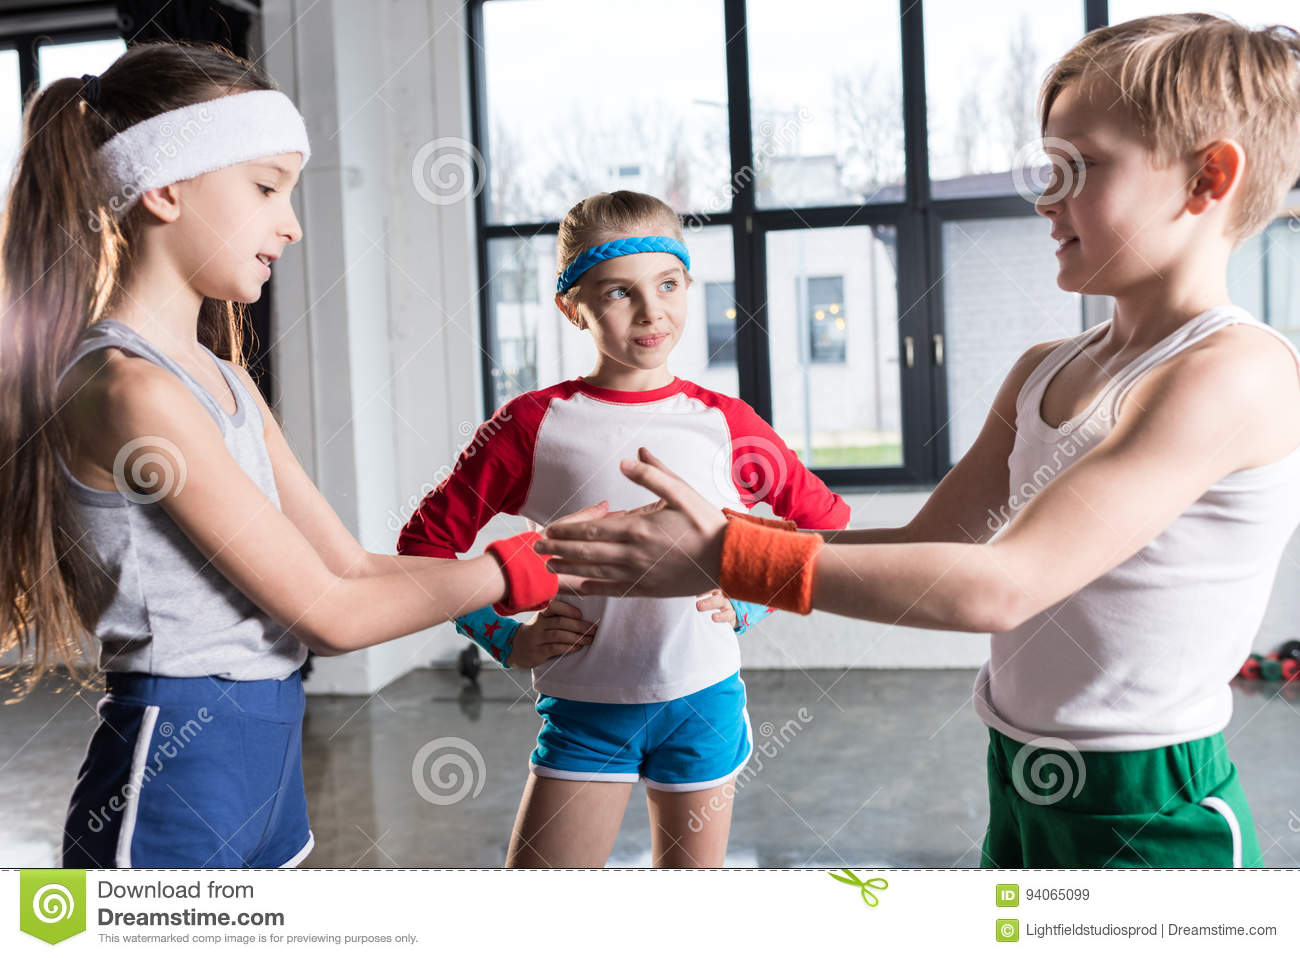 Adorable funny kids in sportswear playing at fitness studio